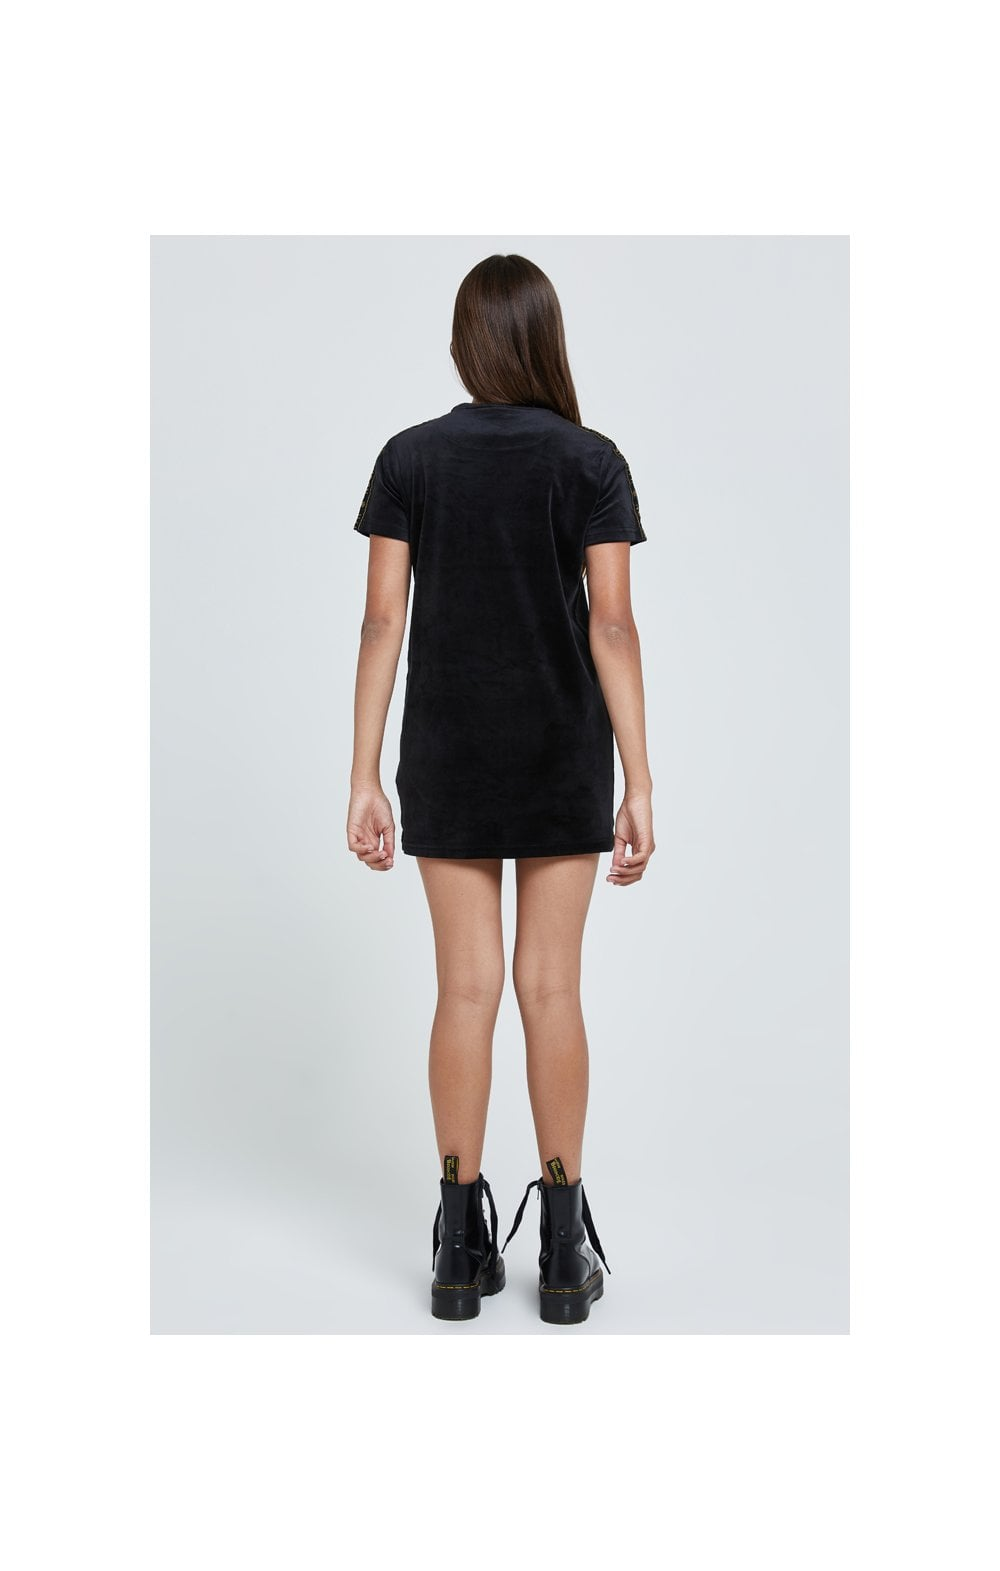 Illusive London Velour Tape Dress - Black (4)